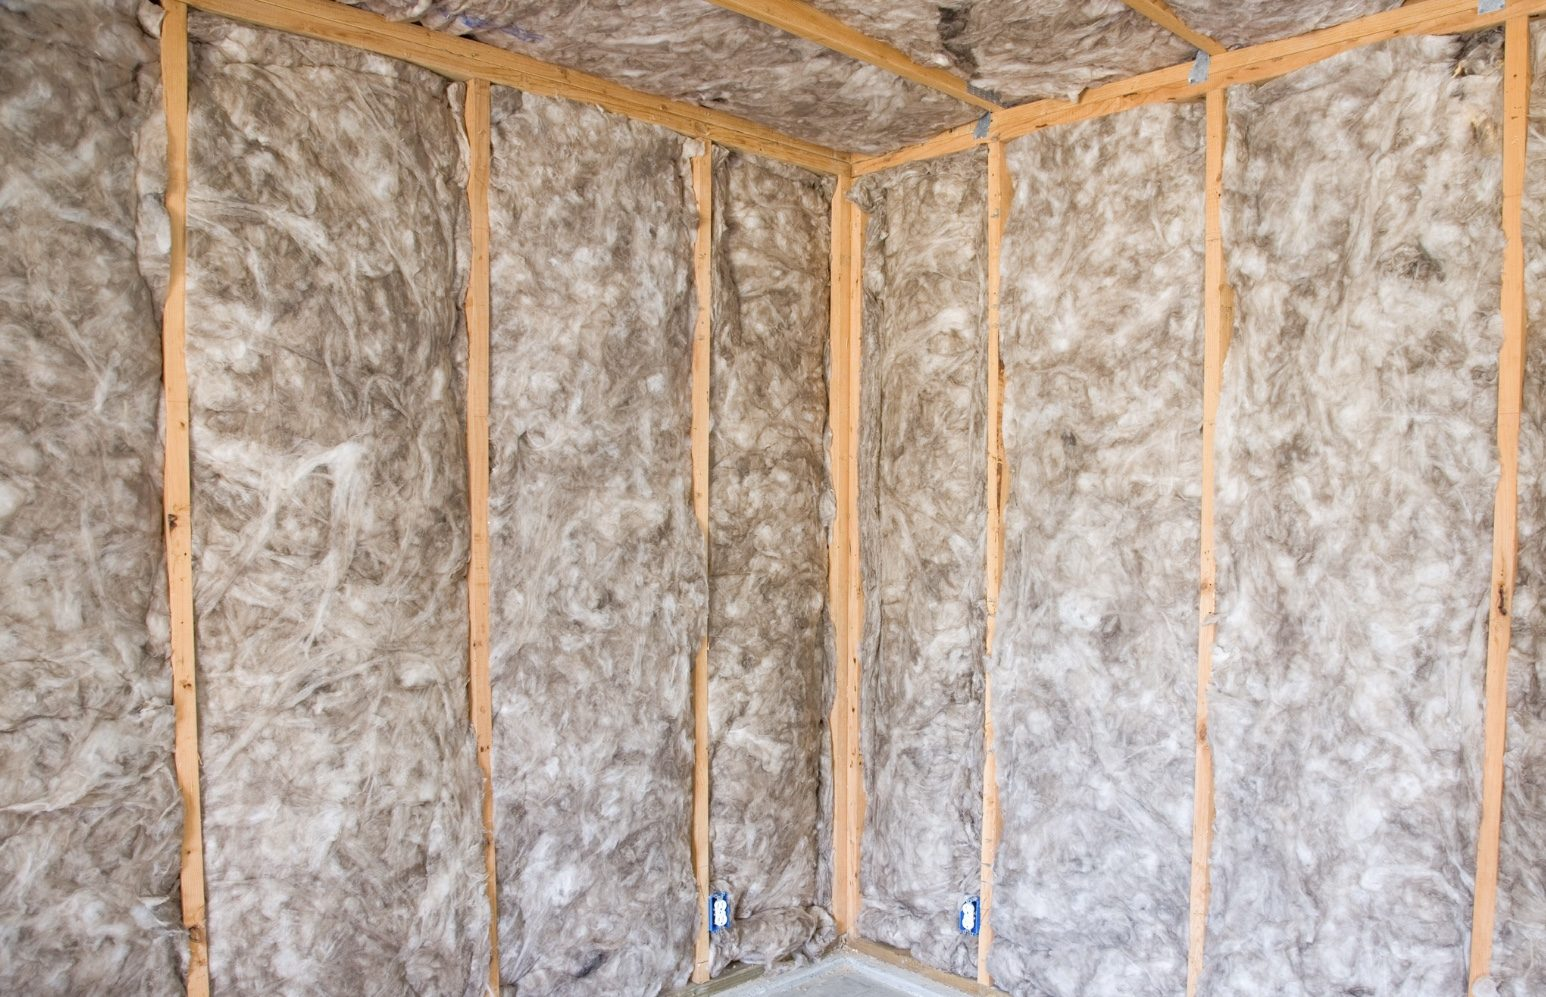 Home Insulation in Daly City